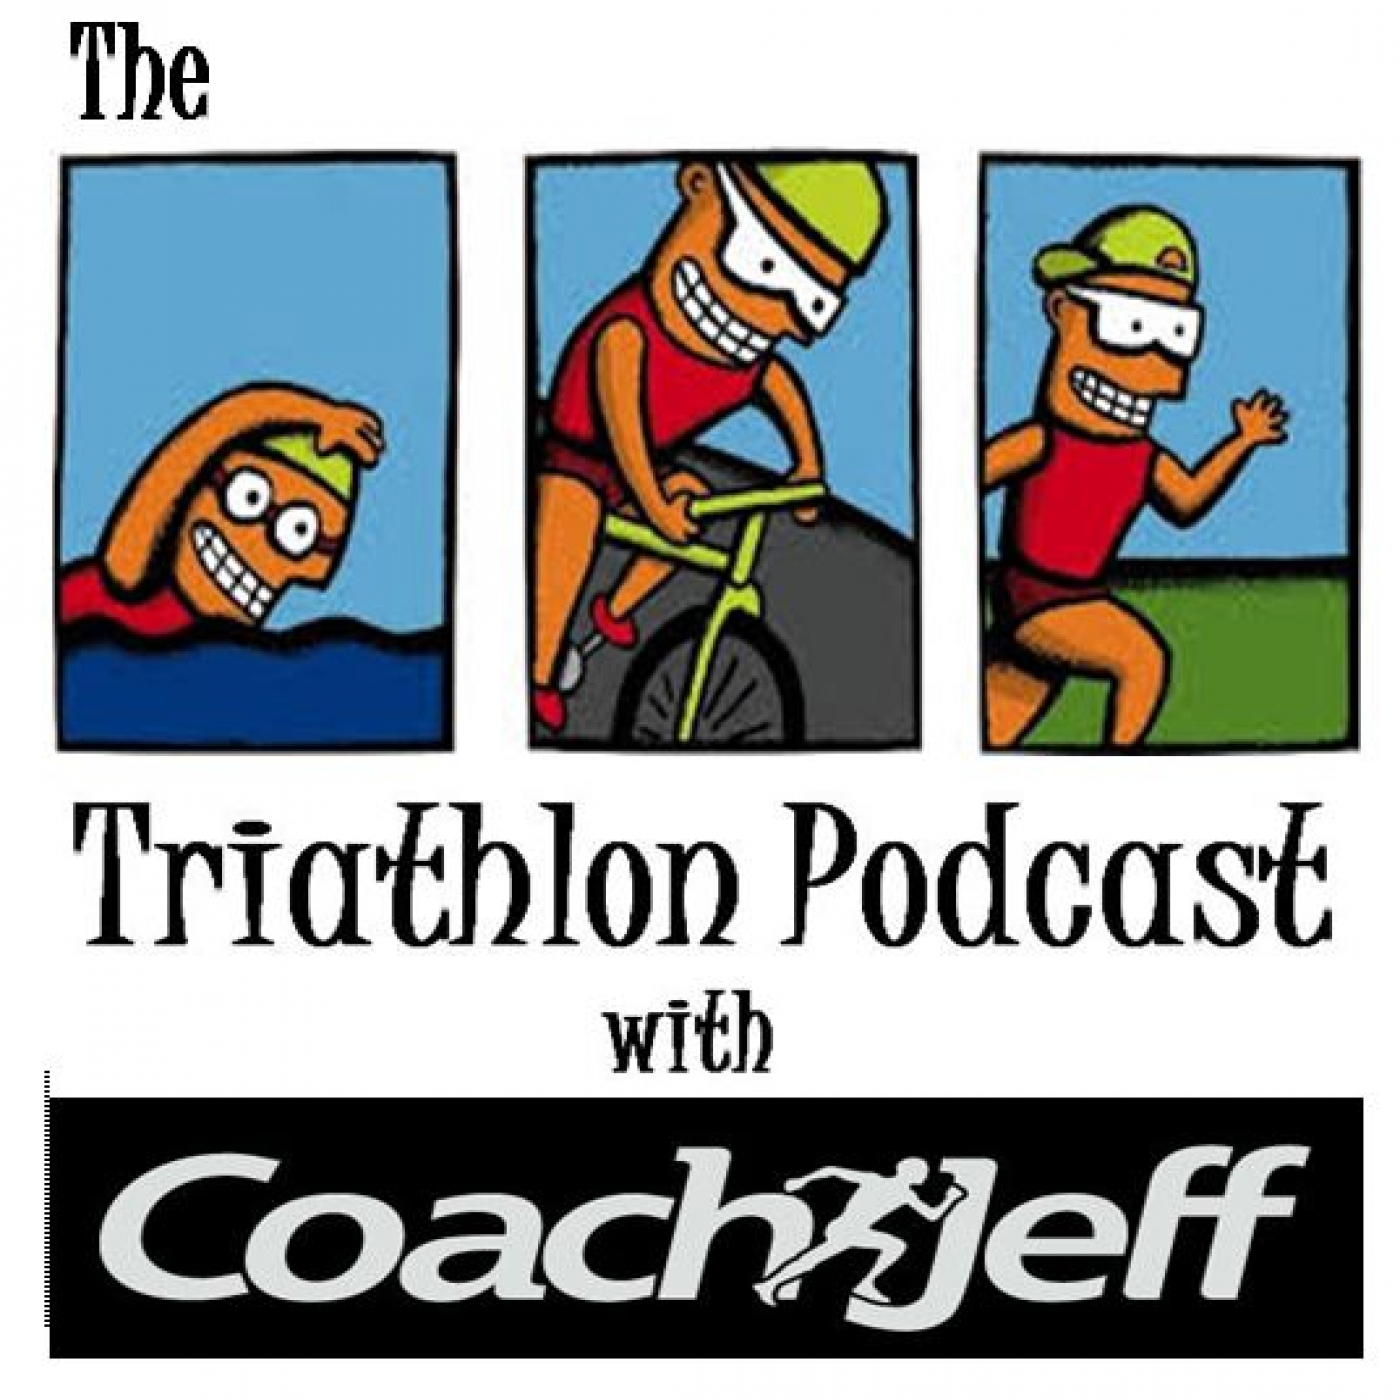 The Triathlon Podcast with Coach Jeff